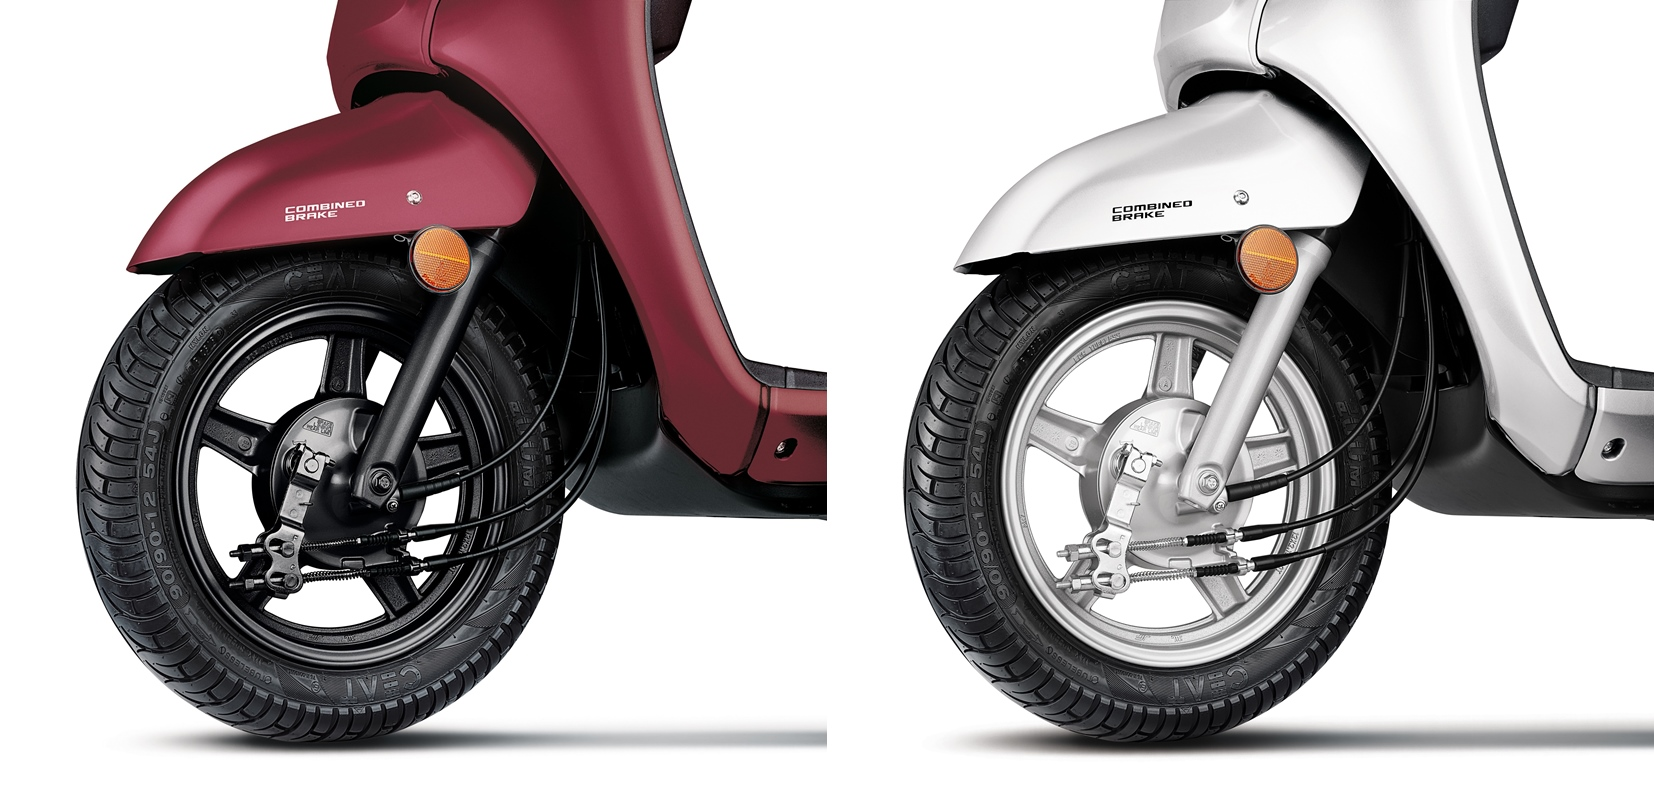 Suzuki Access 125 SE Drum Brake with Alloy Wheels